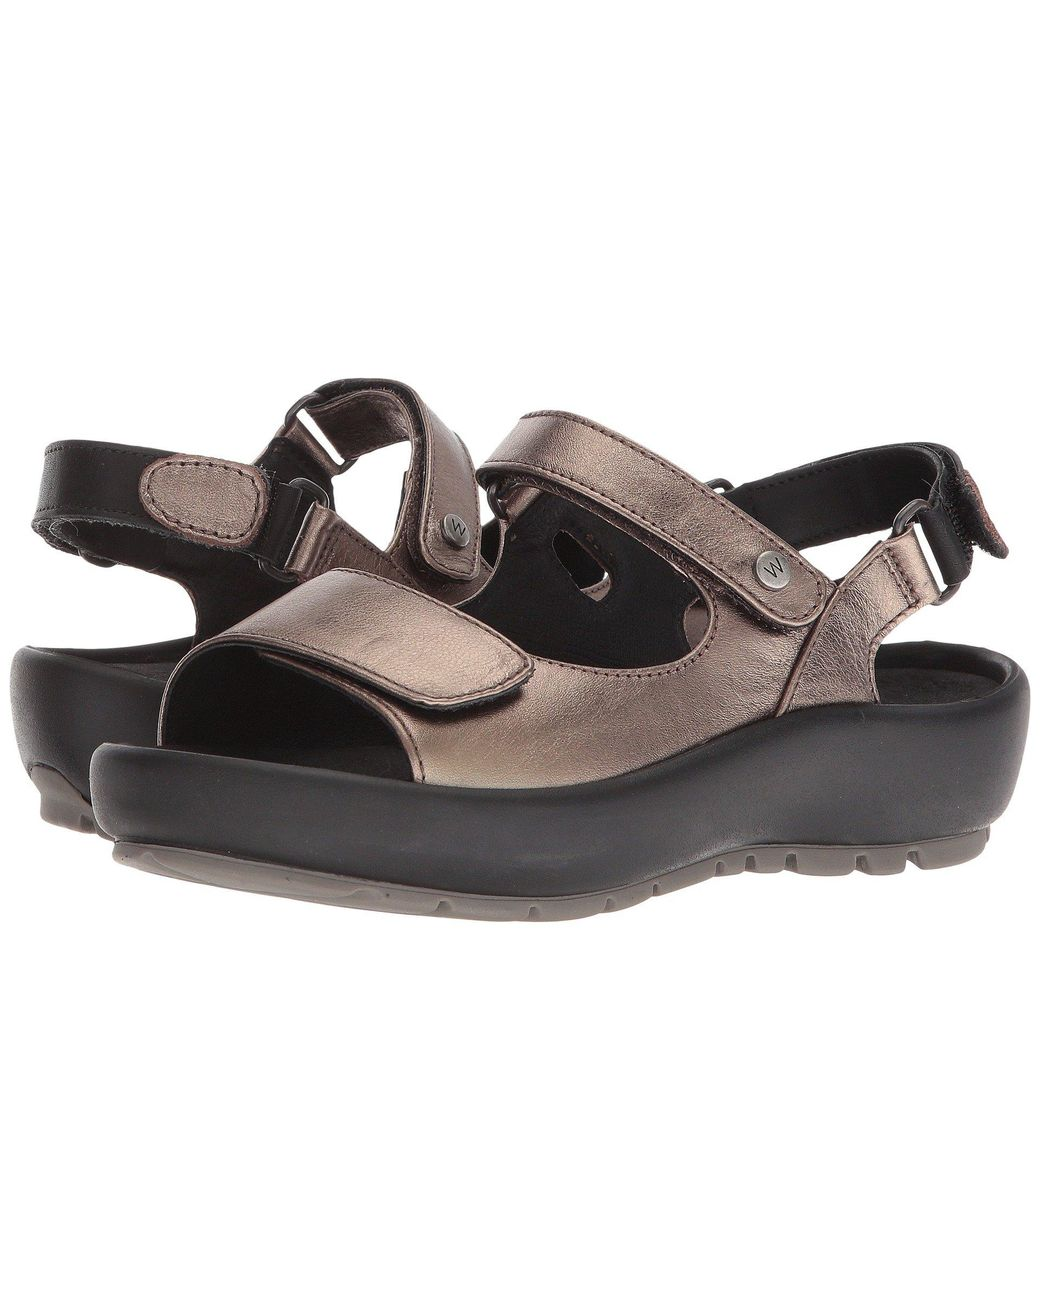 Wolky Rio Red Multi Womens Leather Wedge Slingback Sandals